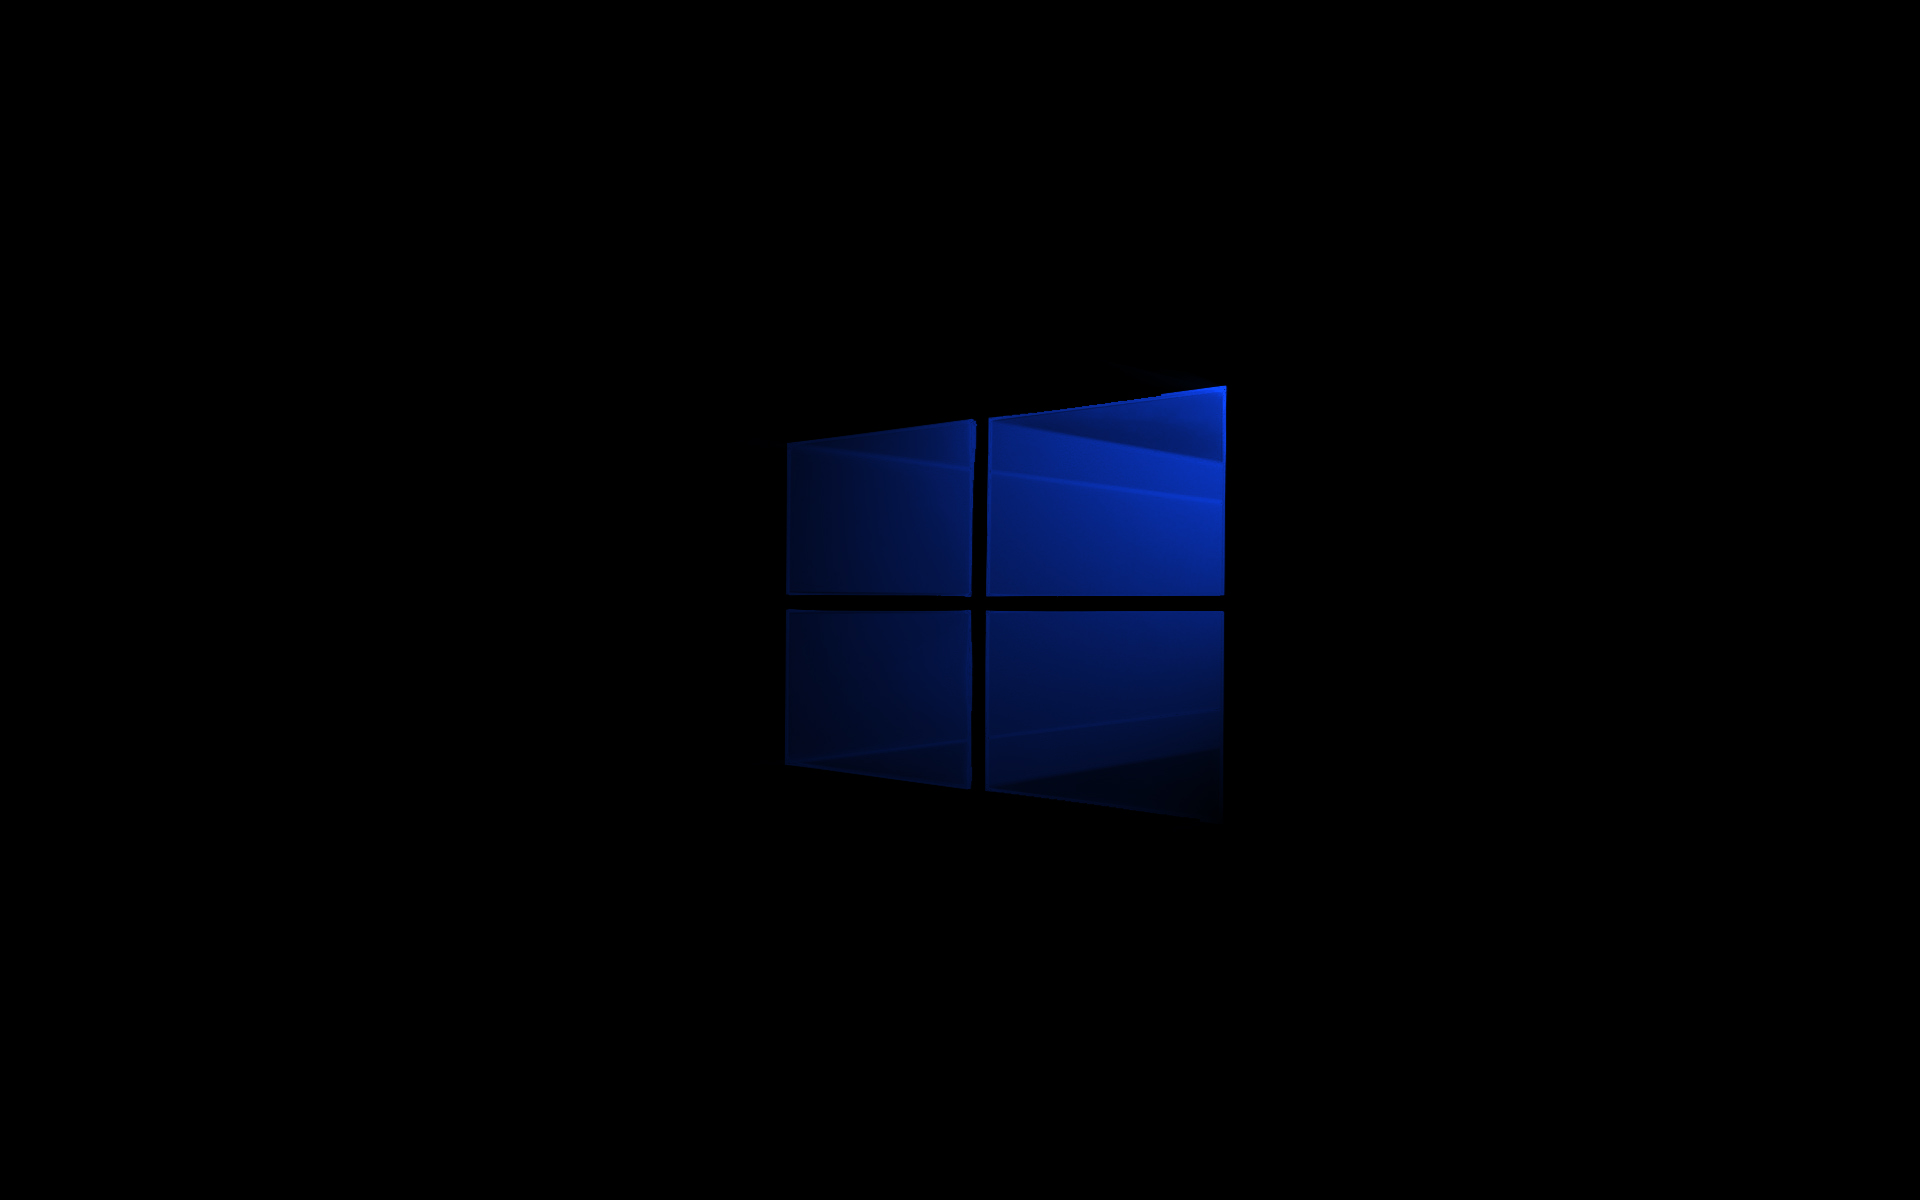 Windows 10 minimal wallpaper wallpapersafari for Deviantart minimal wallpaper